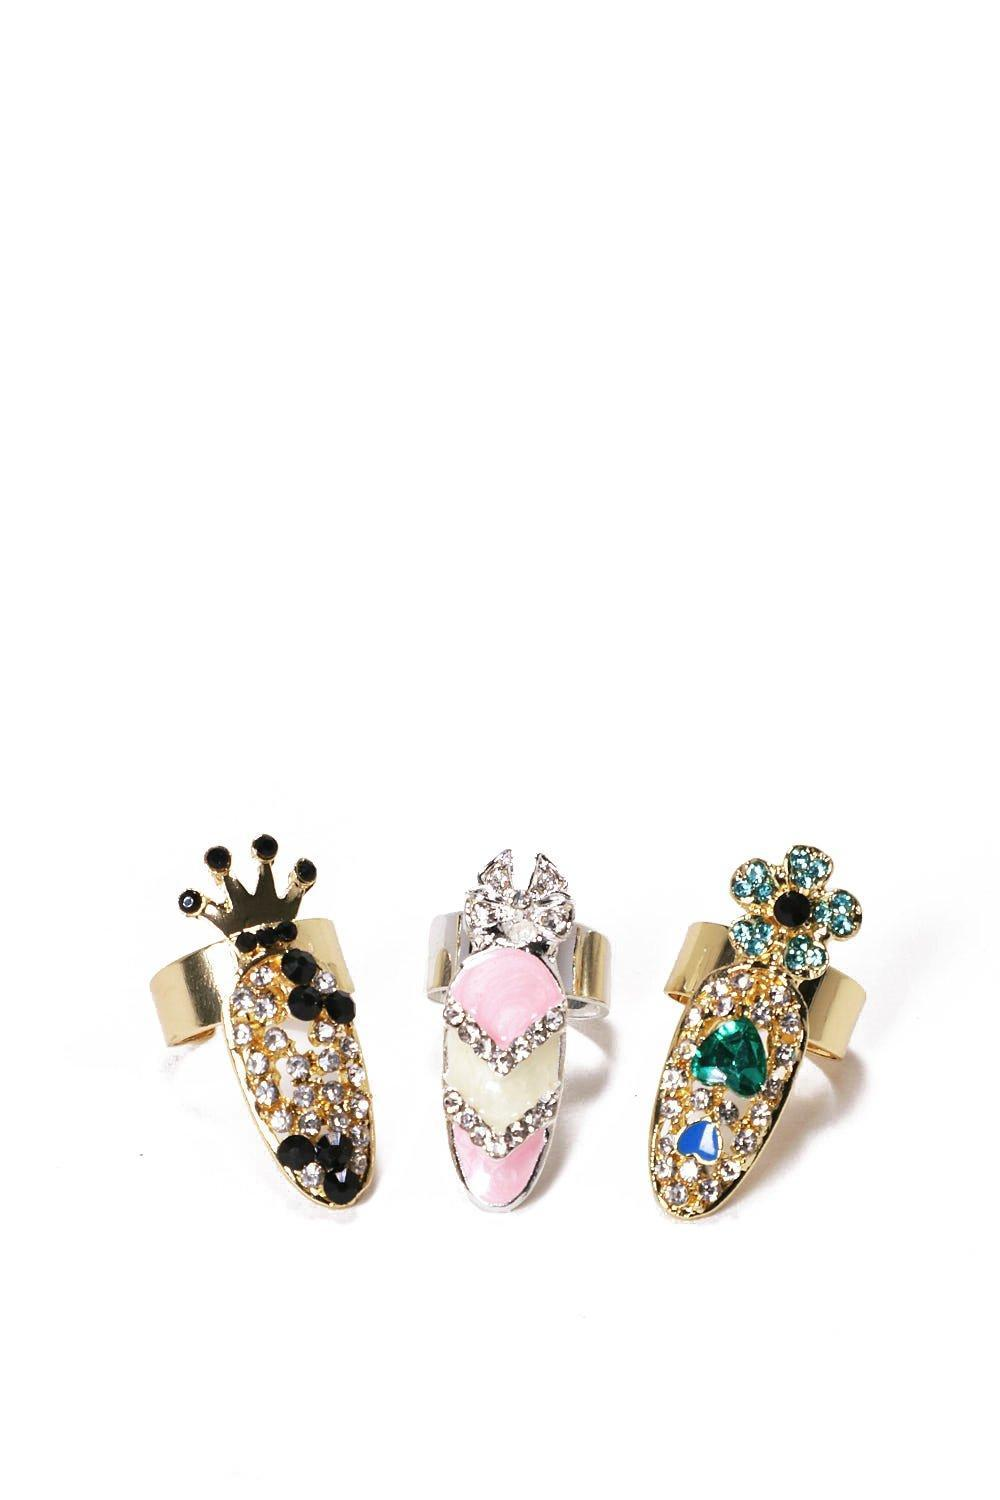 Nasty Gal Synthetic Royal Treatment 3-pc Ring Set Royal Treatment 3-pc Ring Set in Gold (Metallic)